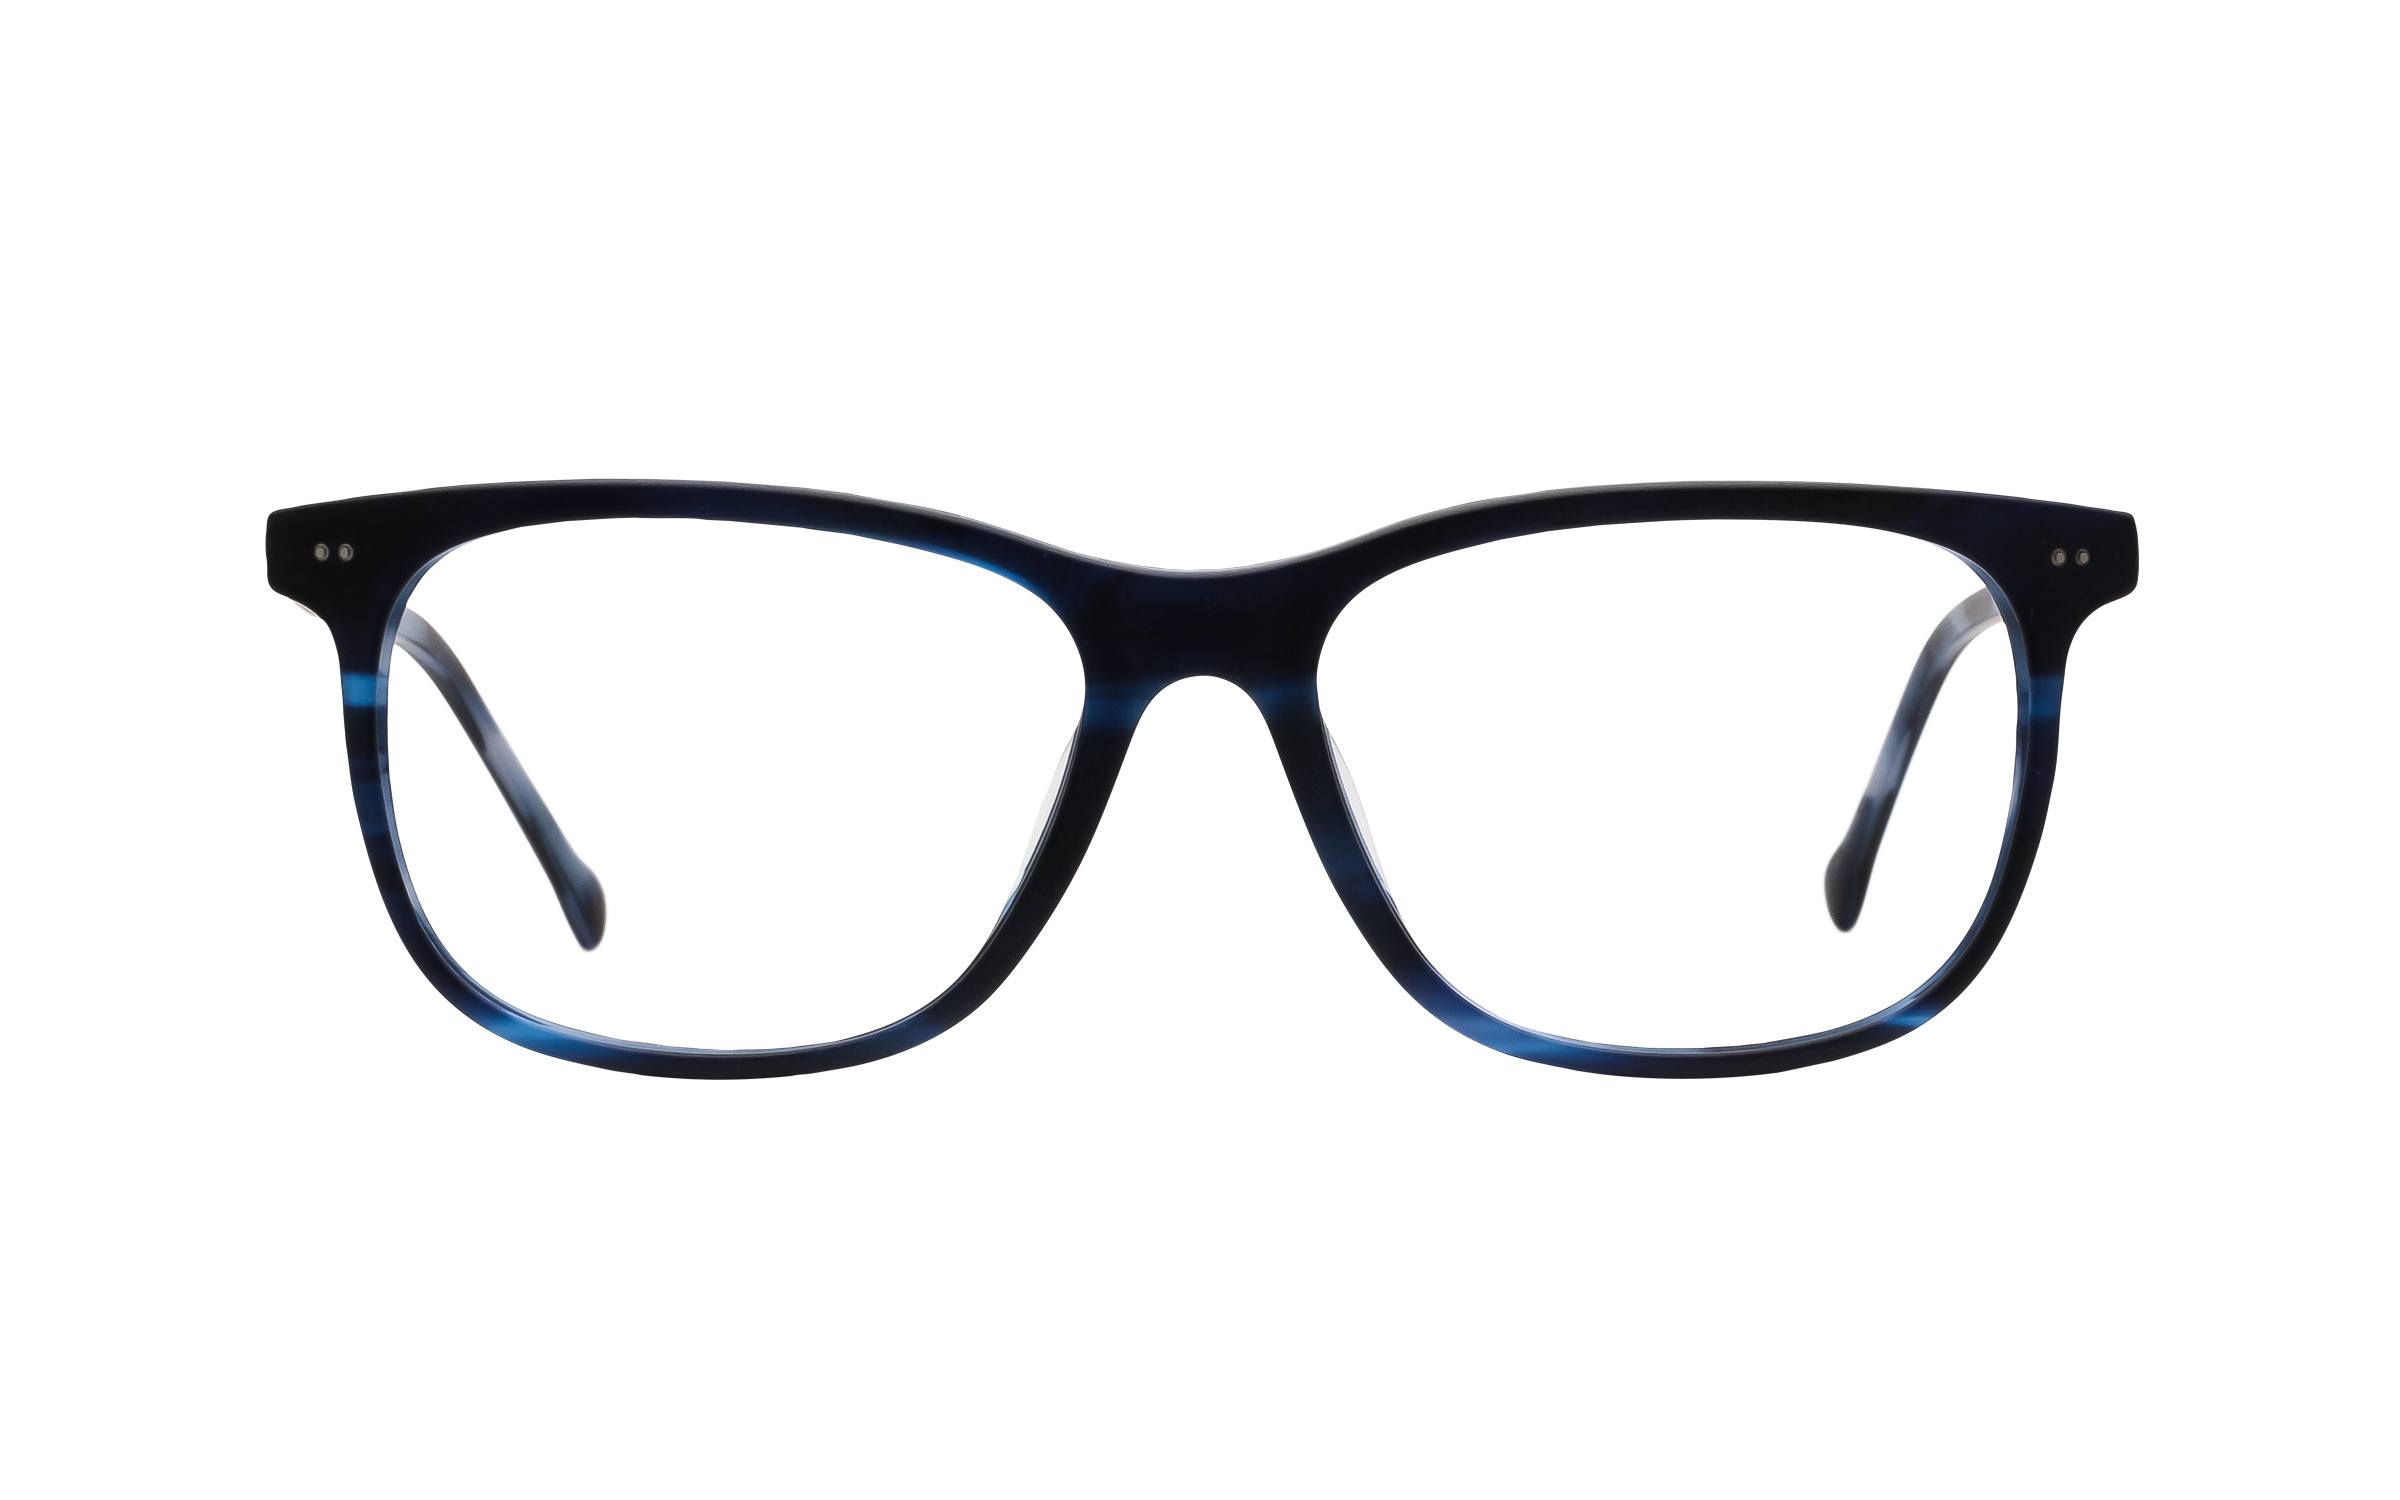 7 for All Mankind Glasses D-Frame Blue Online Clearly